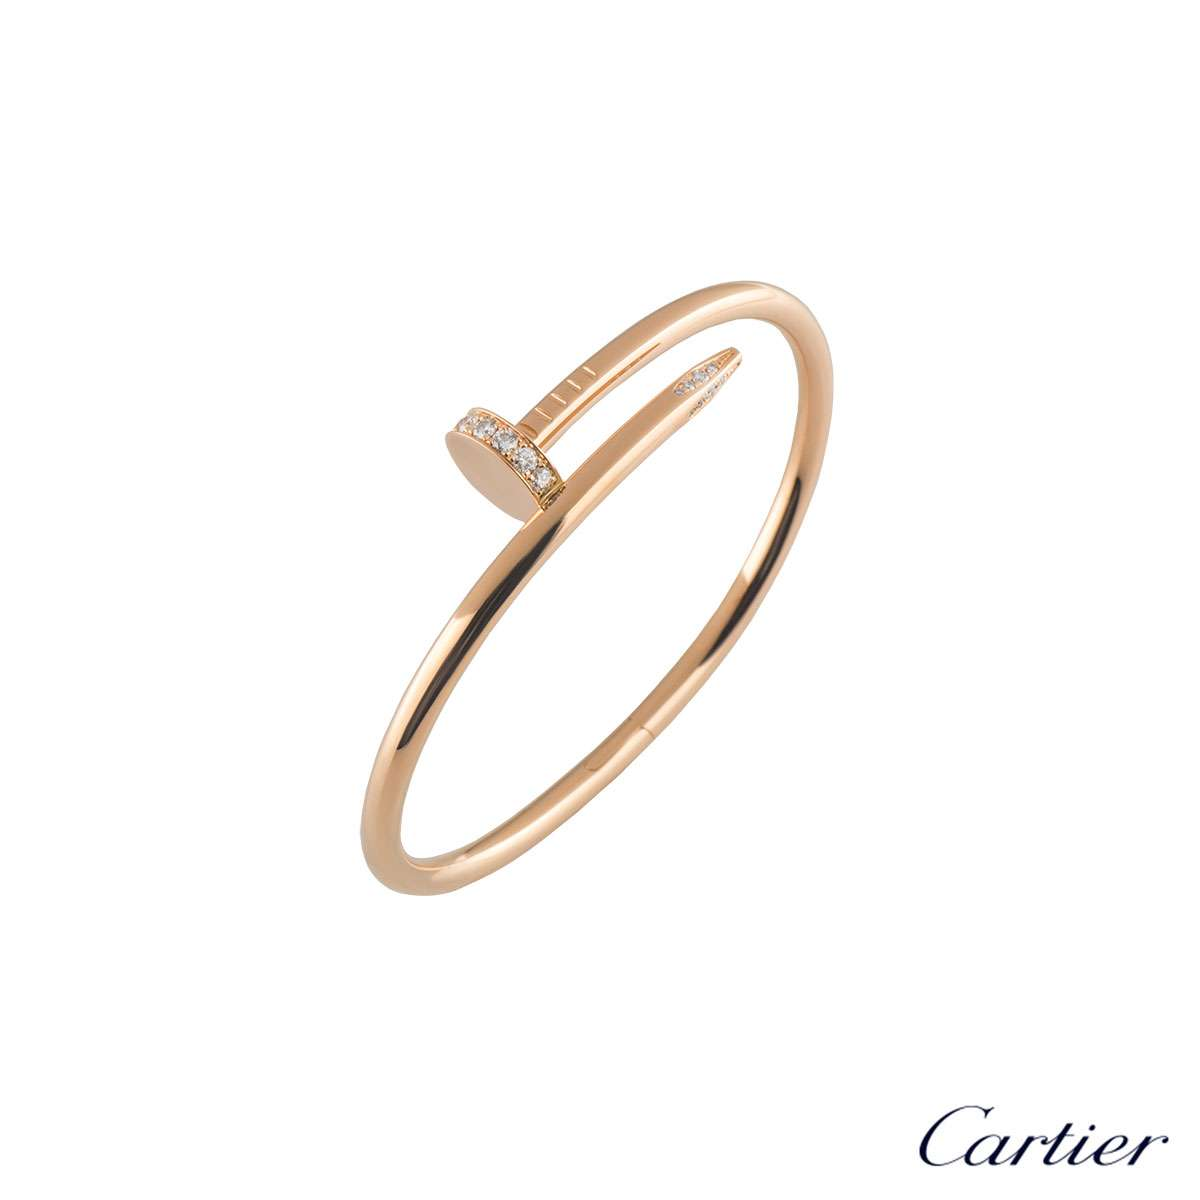 un cartier senatus timeless the torque juste an enlarged selections oversized is it new style clou with well article amongst bracelet nails as necklace